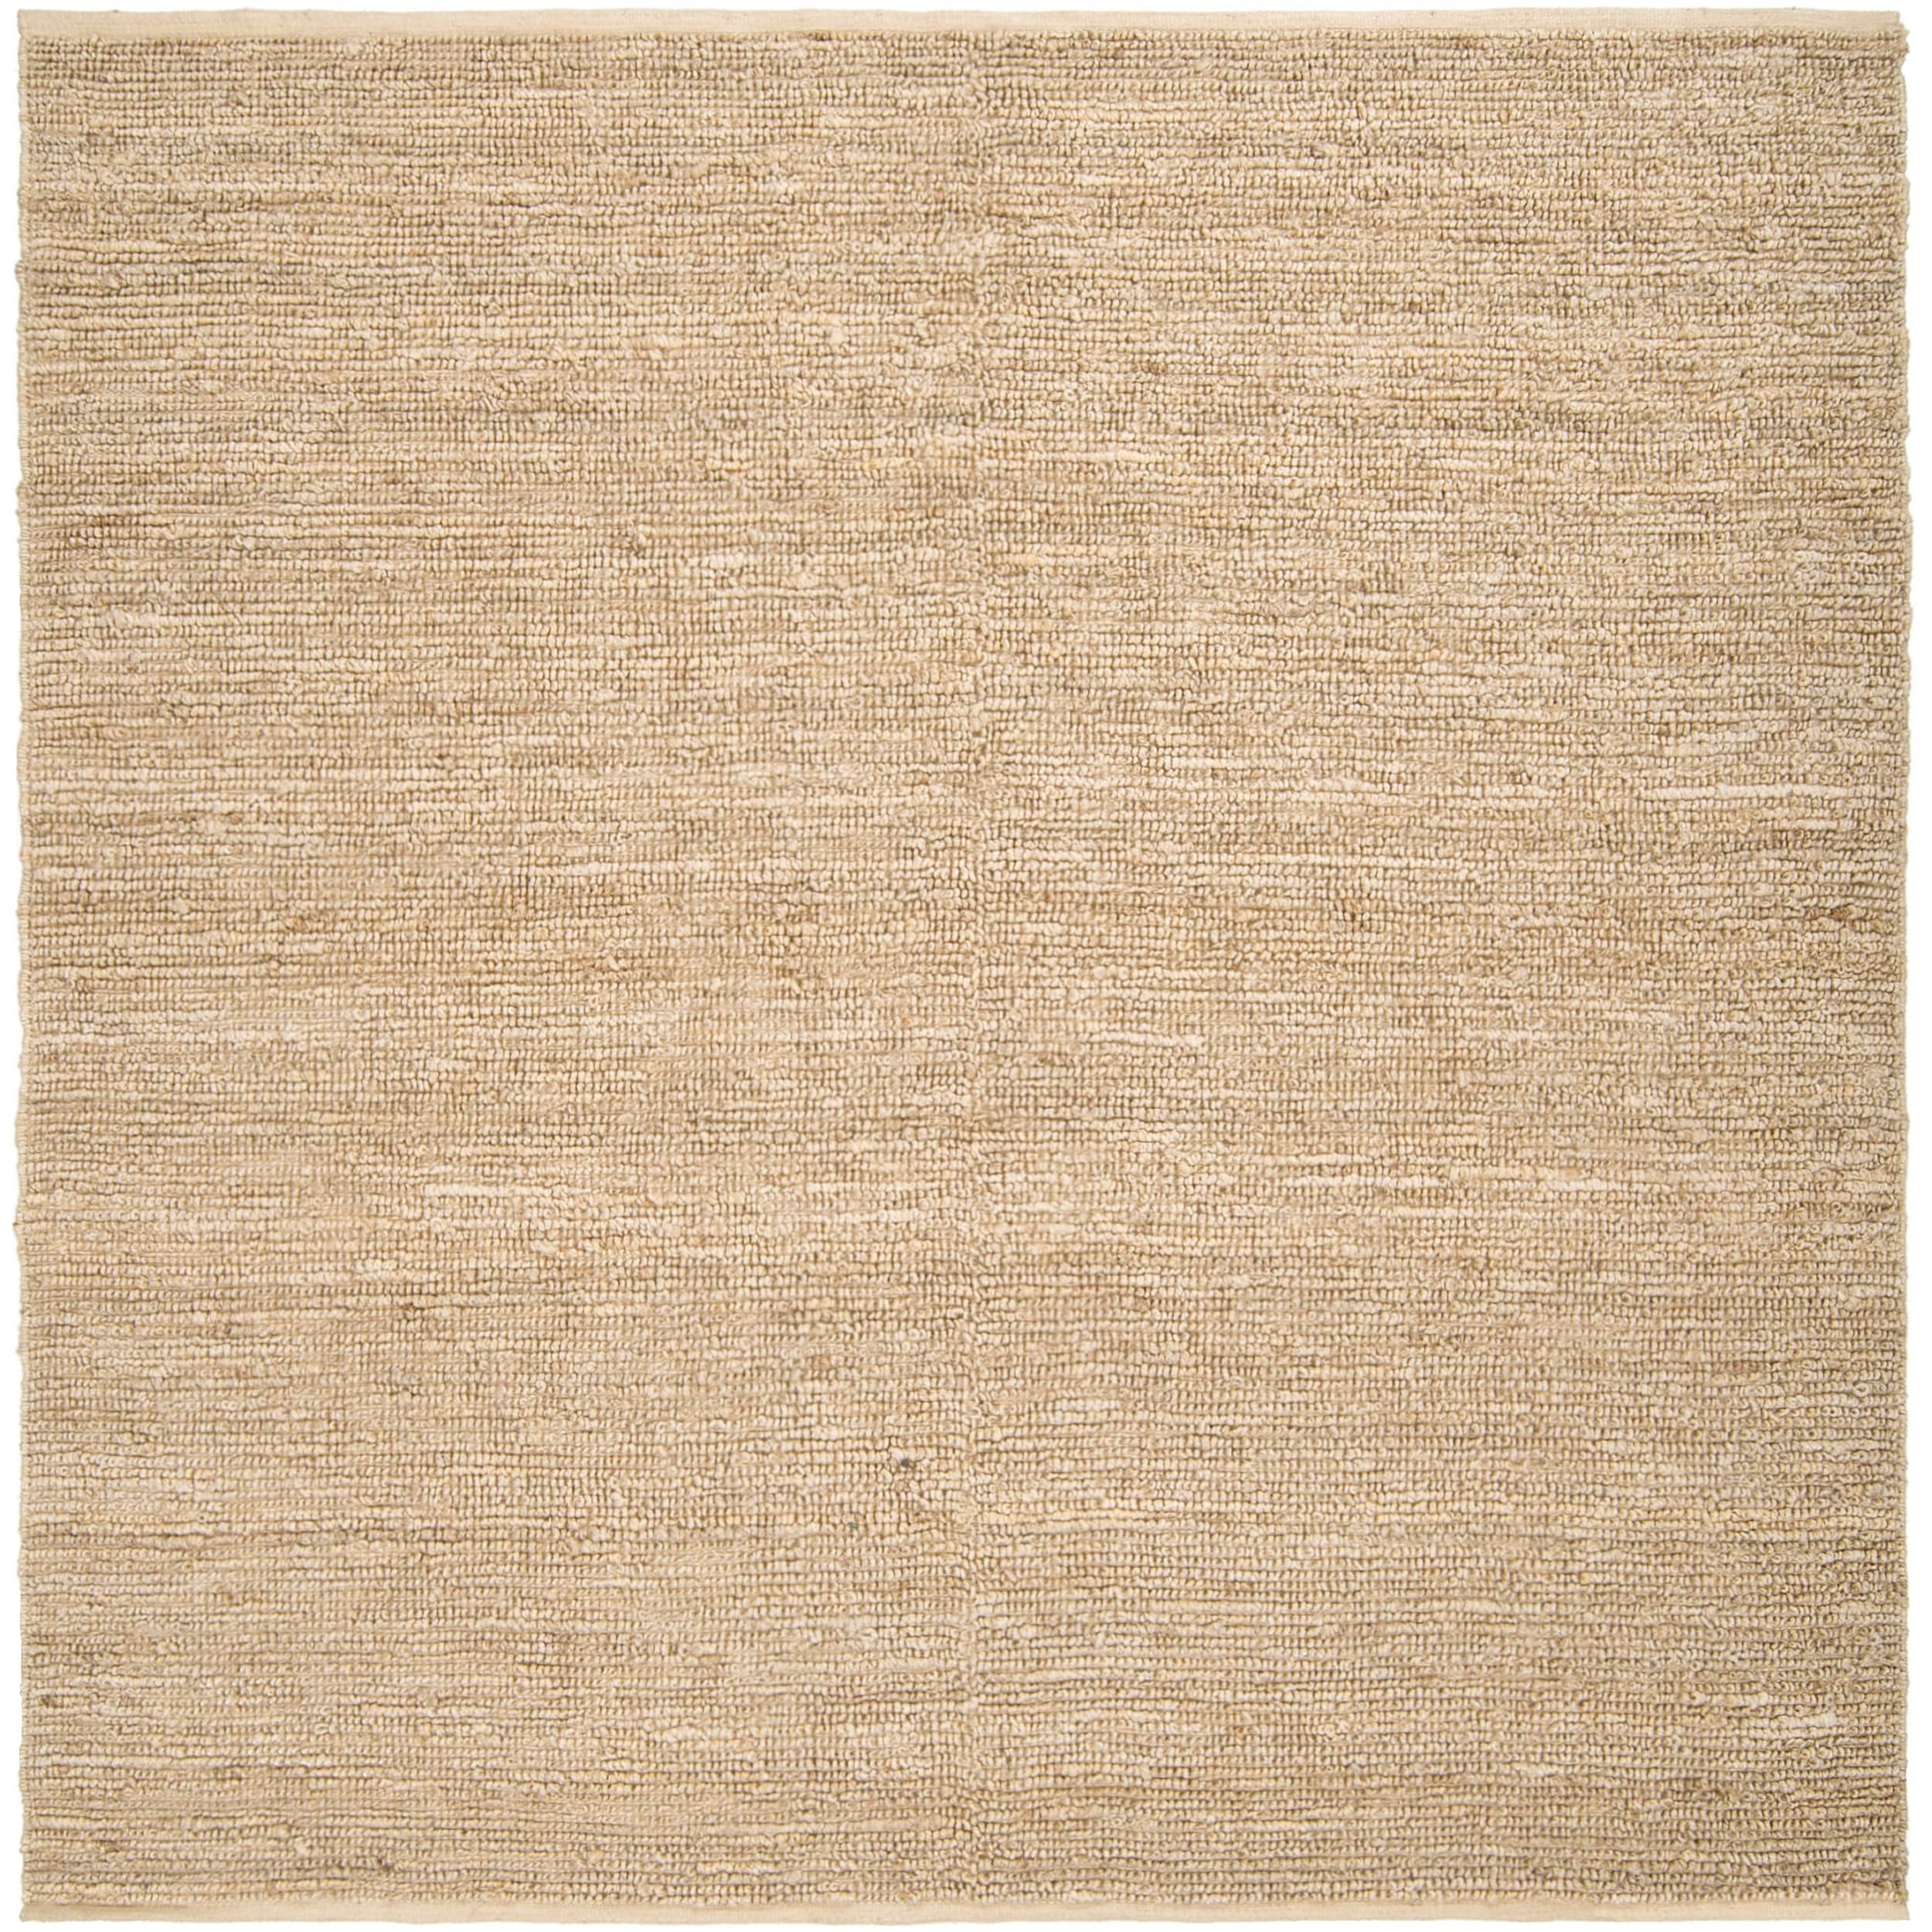 Hand Woven Beige Jawfish Natural Fiber Jute Rug 8 Square